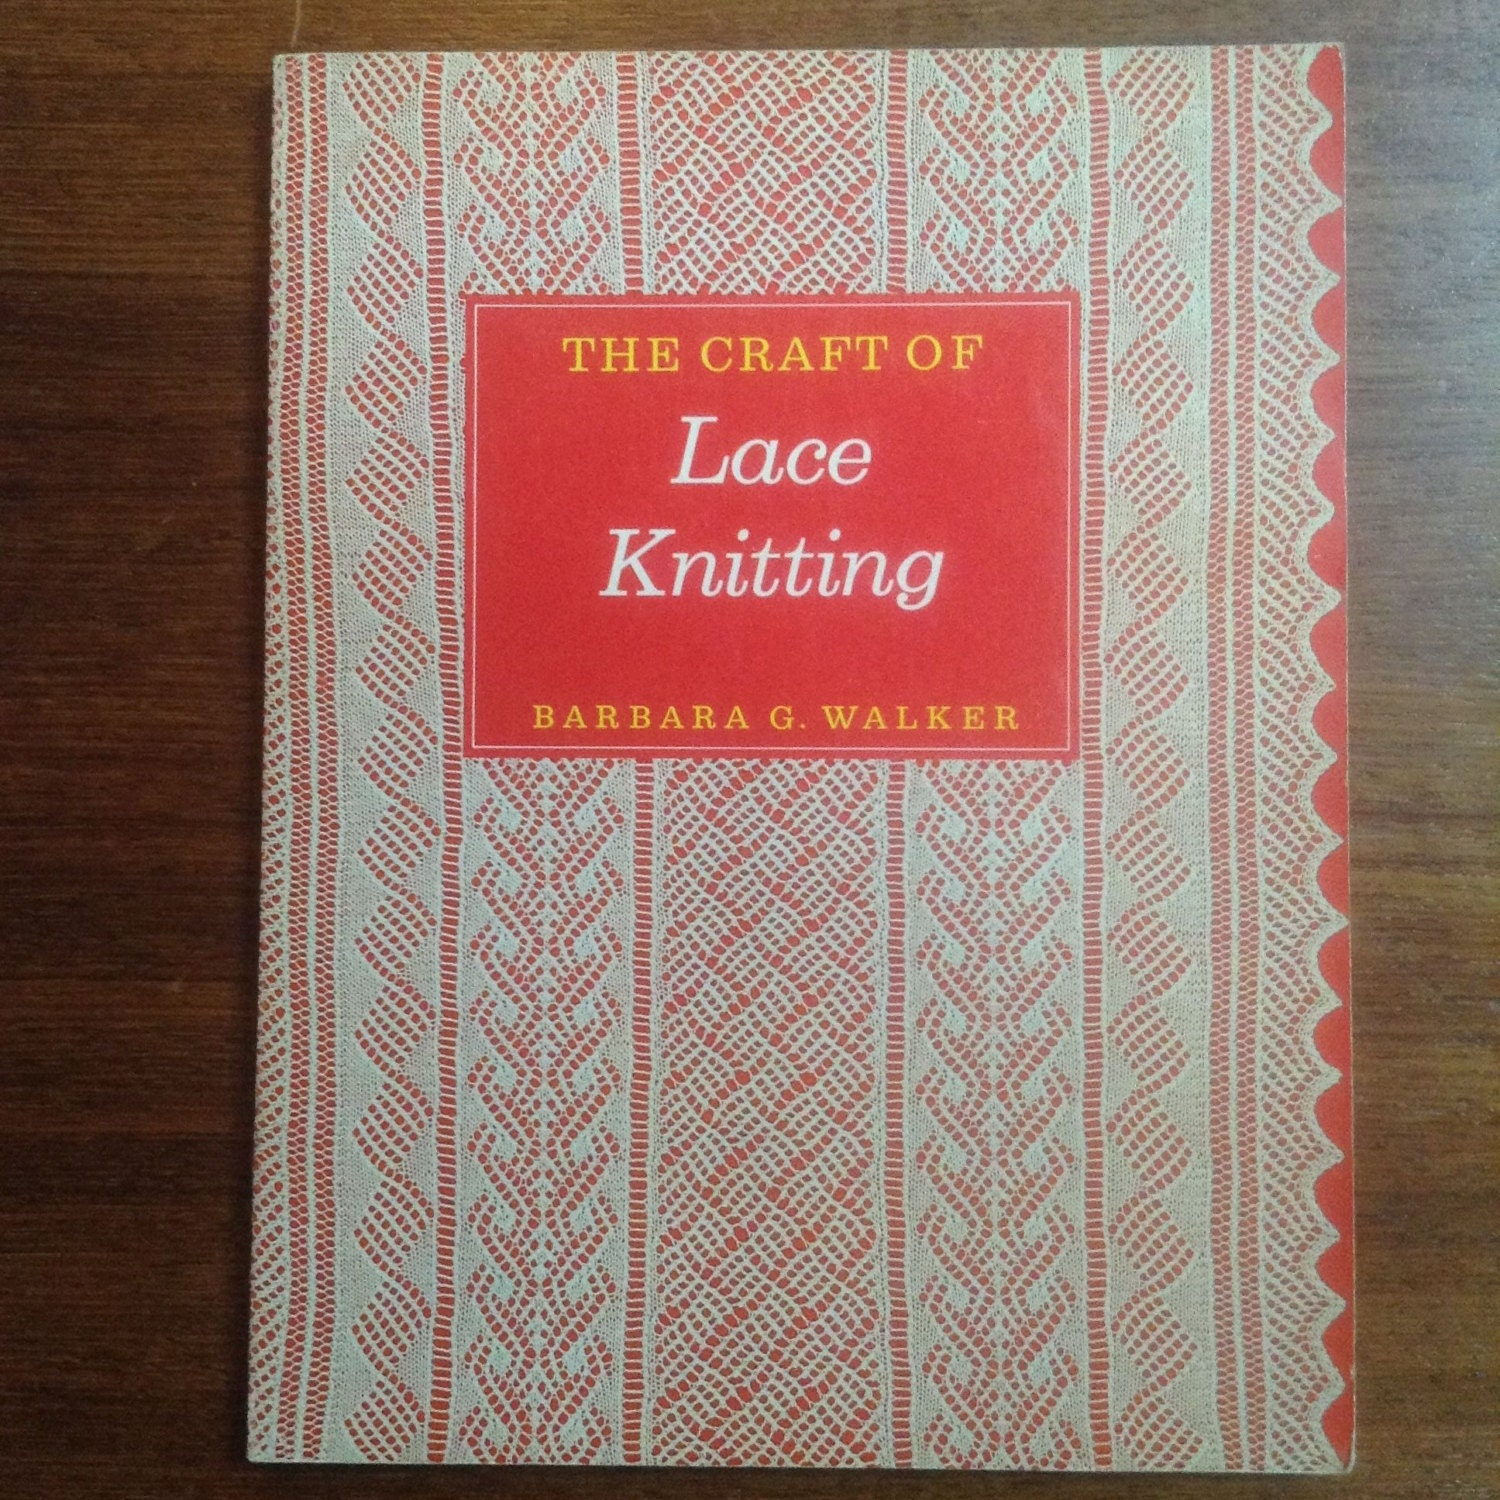 Lace Knitting Pattern Library : The Craft of Lace Knitting The Scribner Library Emblem